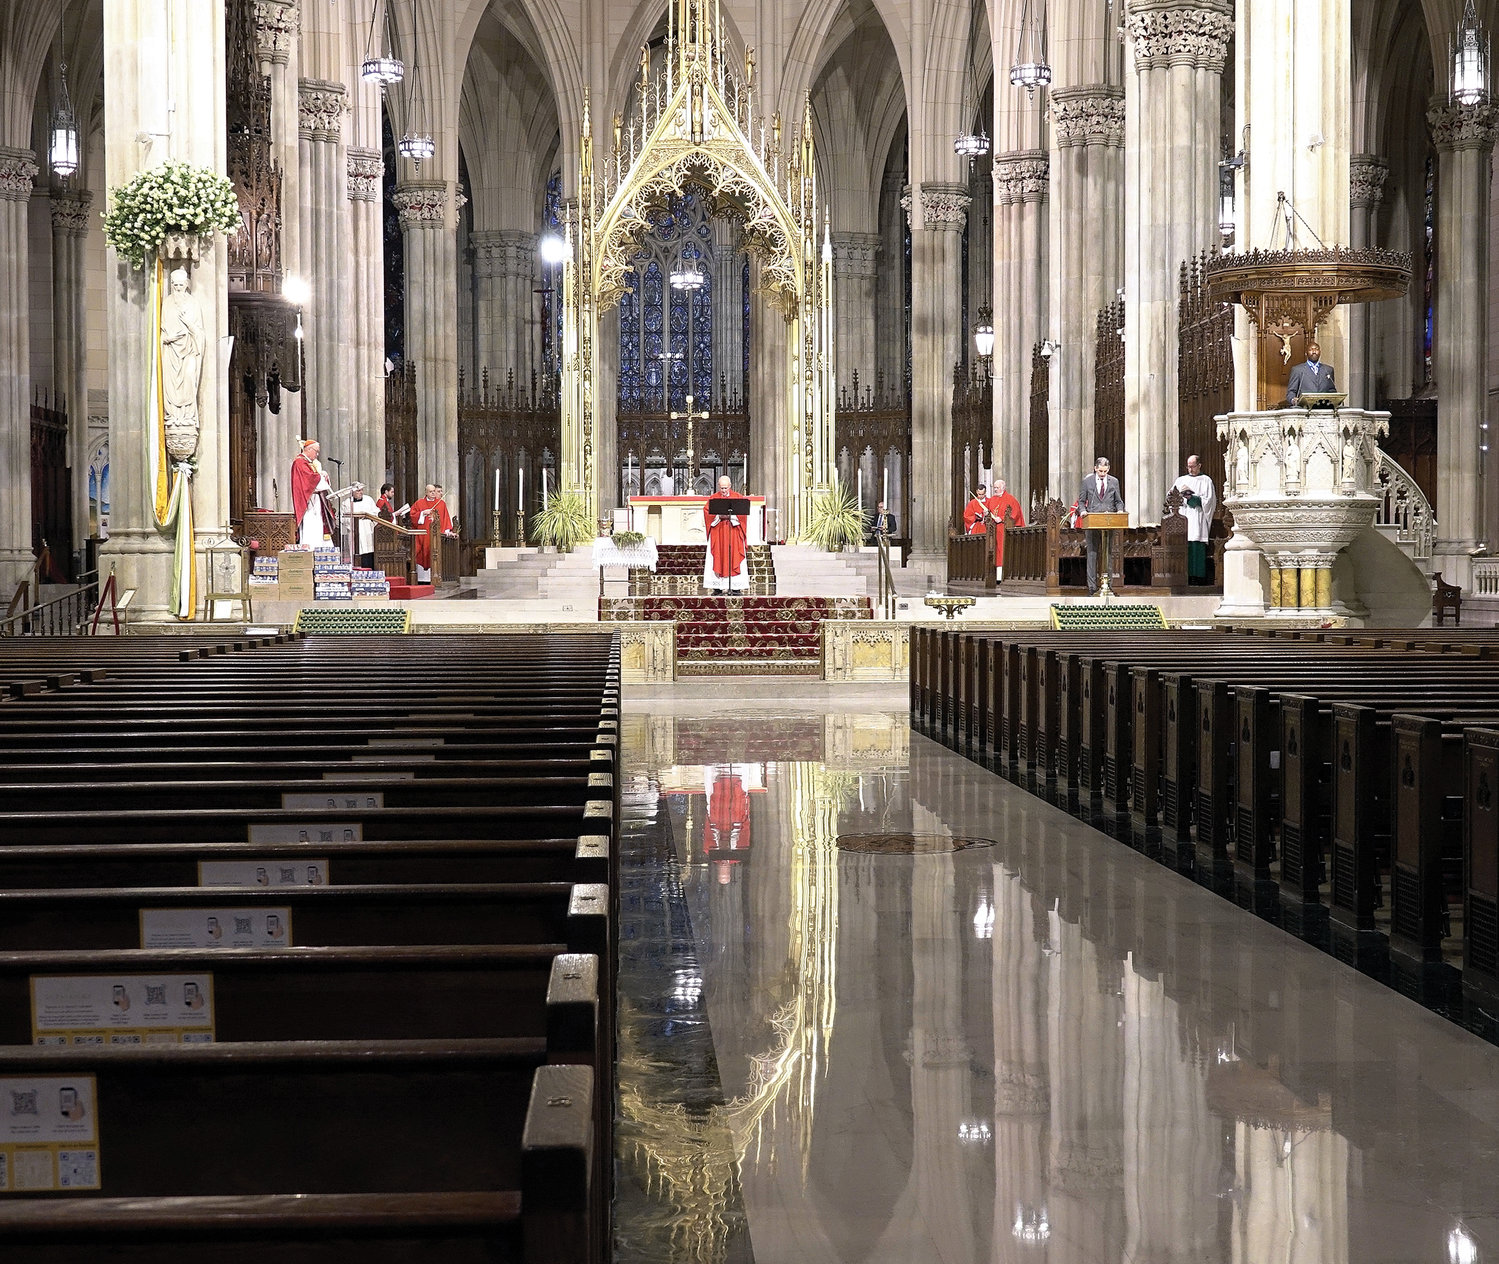 The pews of St. Patrick's Cathedral are empty of parishioners. Current standards for public gatherings due to the coronavirus crisis do not permit Mass to be offered publicly in the archdiocese. The Easter Sunday Mass from St. Patrick's Cathedral will also be televised on PIX11 at 10 a.m. on April 12.